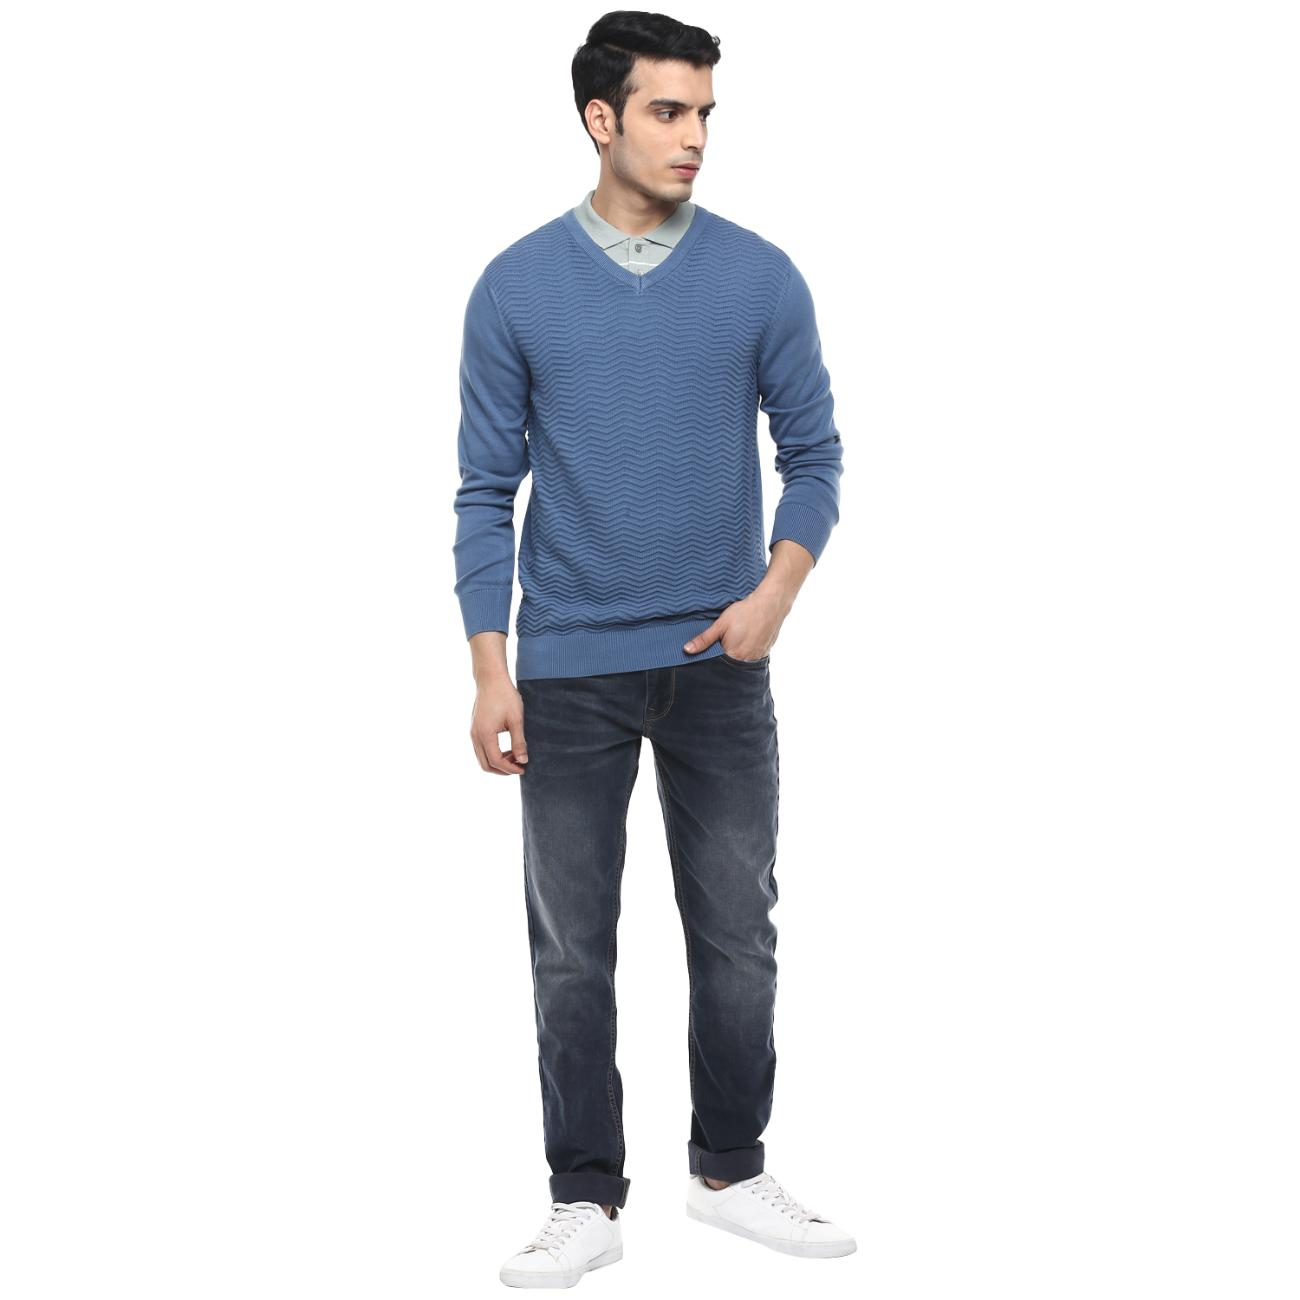 Purchase Blue Casual Sweater for Men